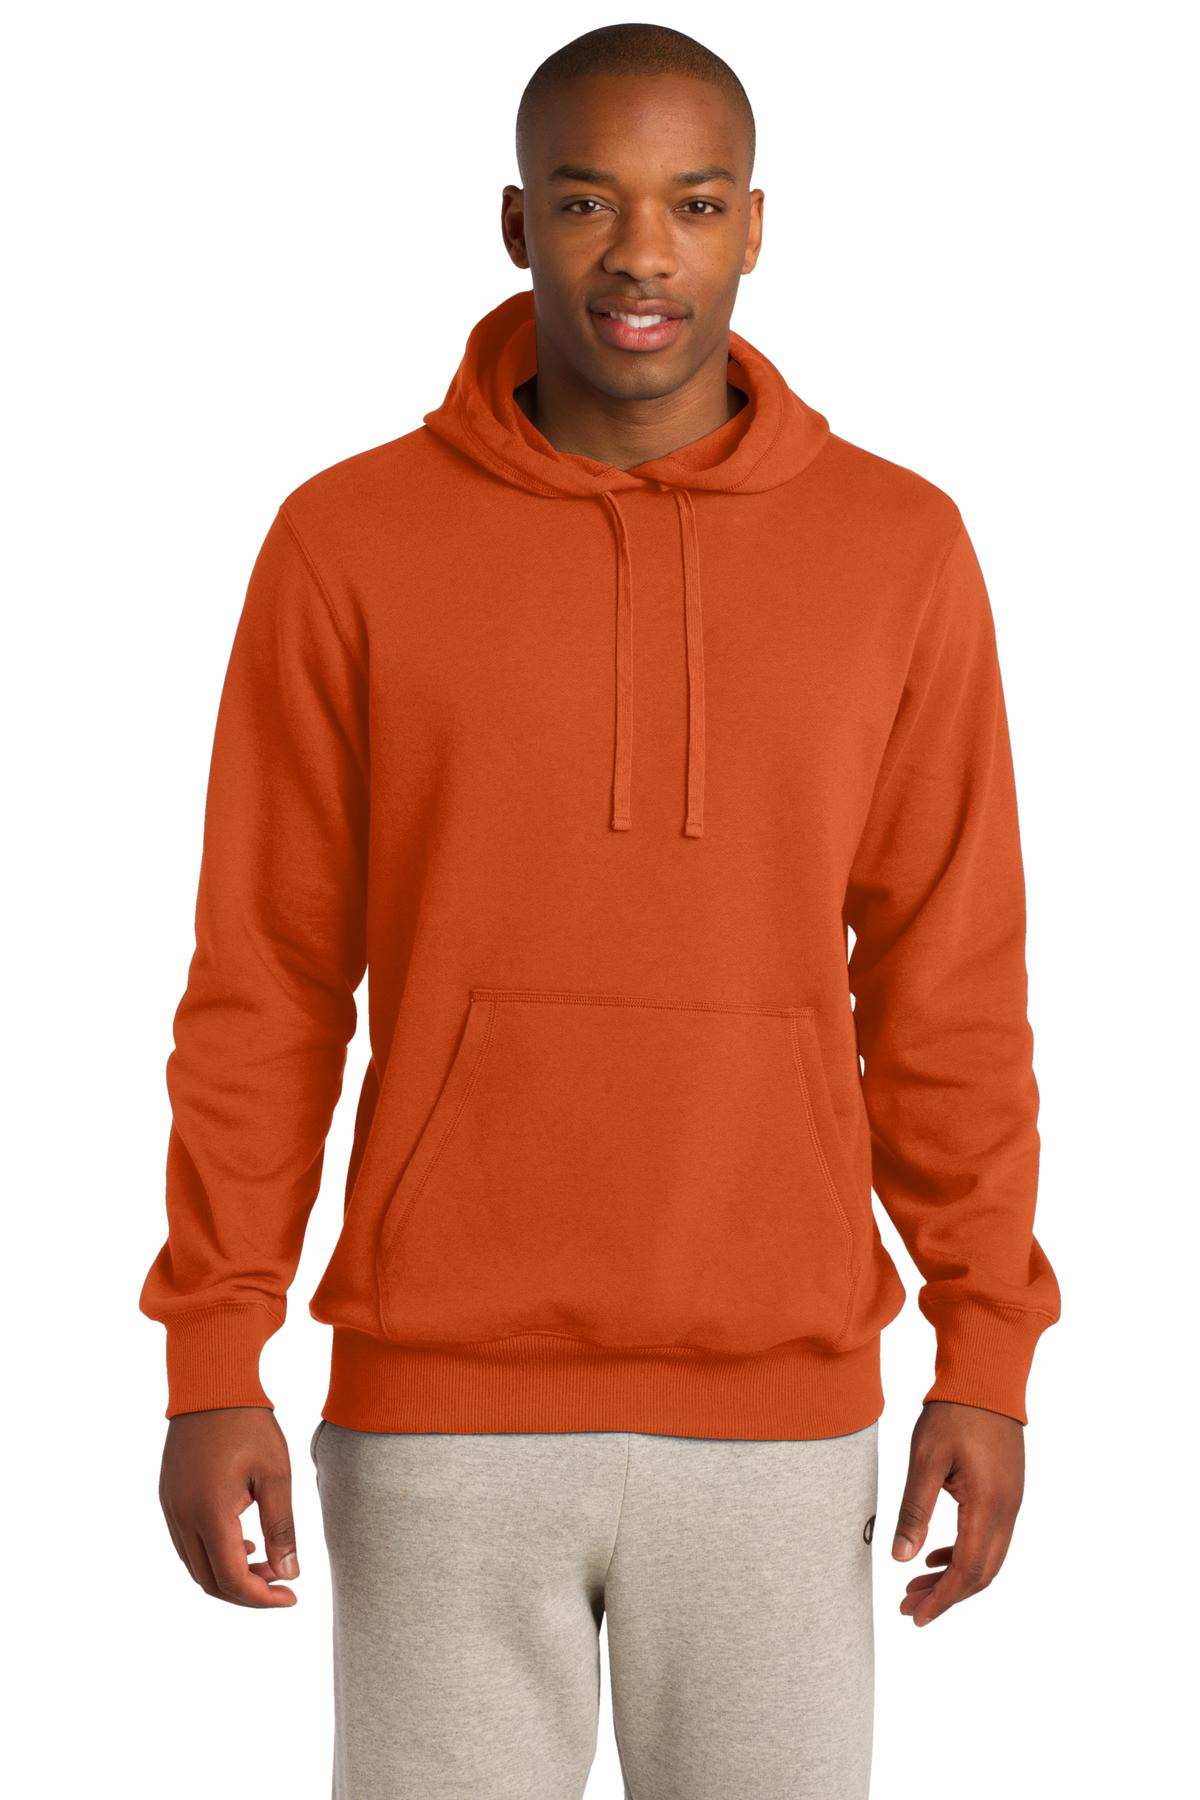 Sweatshirts-Fleece-Hooded-59